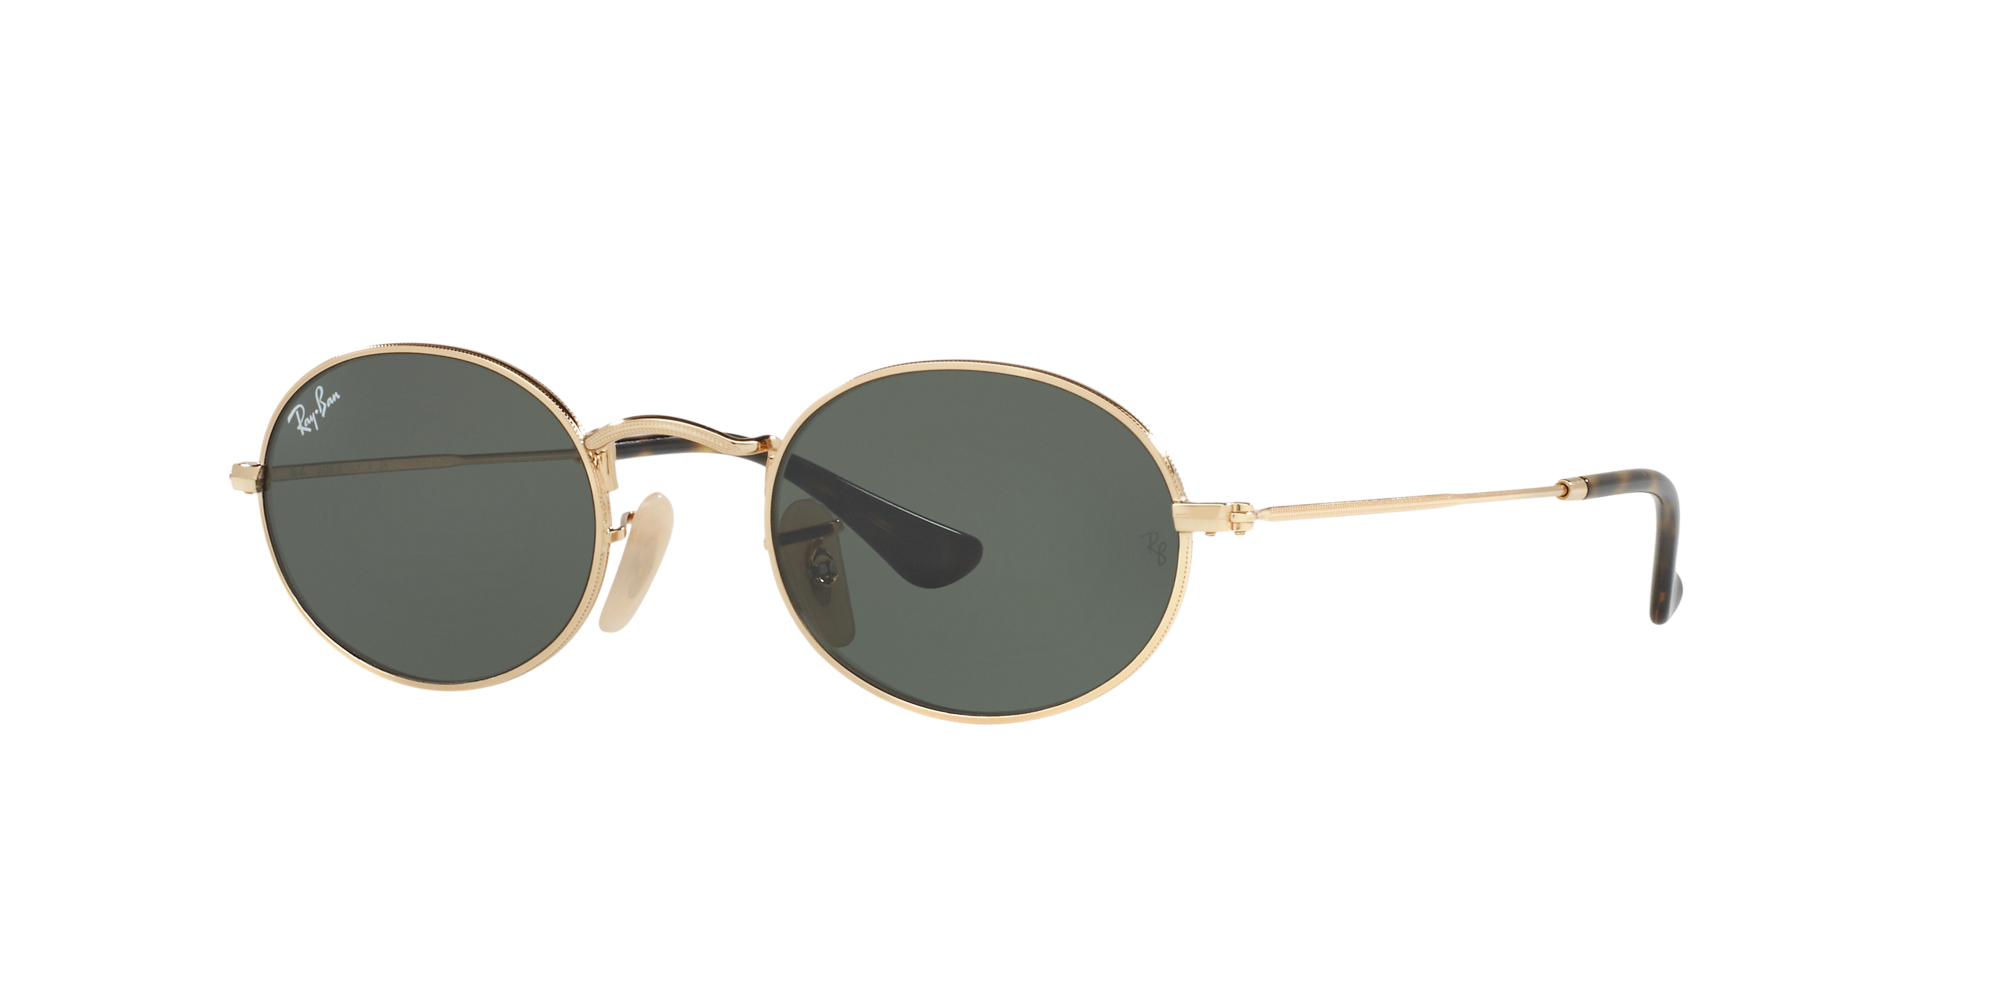 RAY-BAN OVAL RB 3547N 001-360